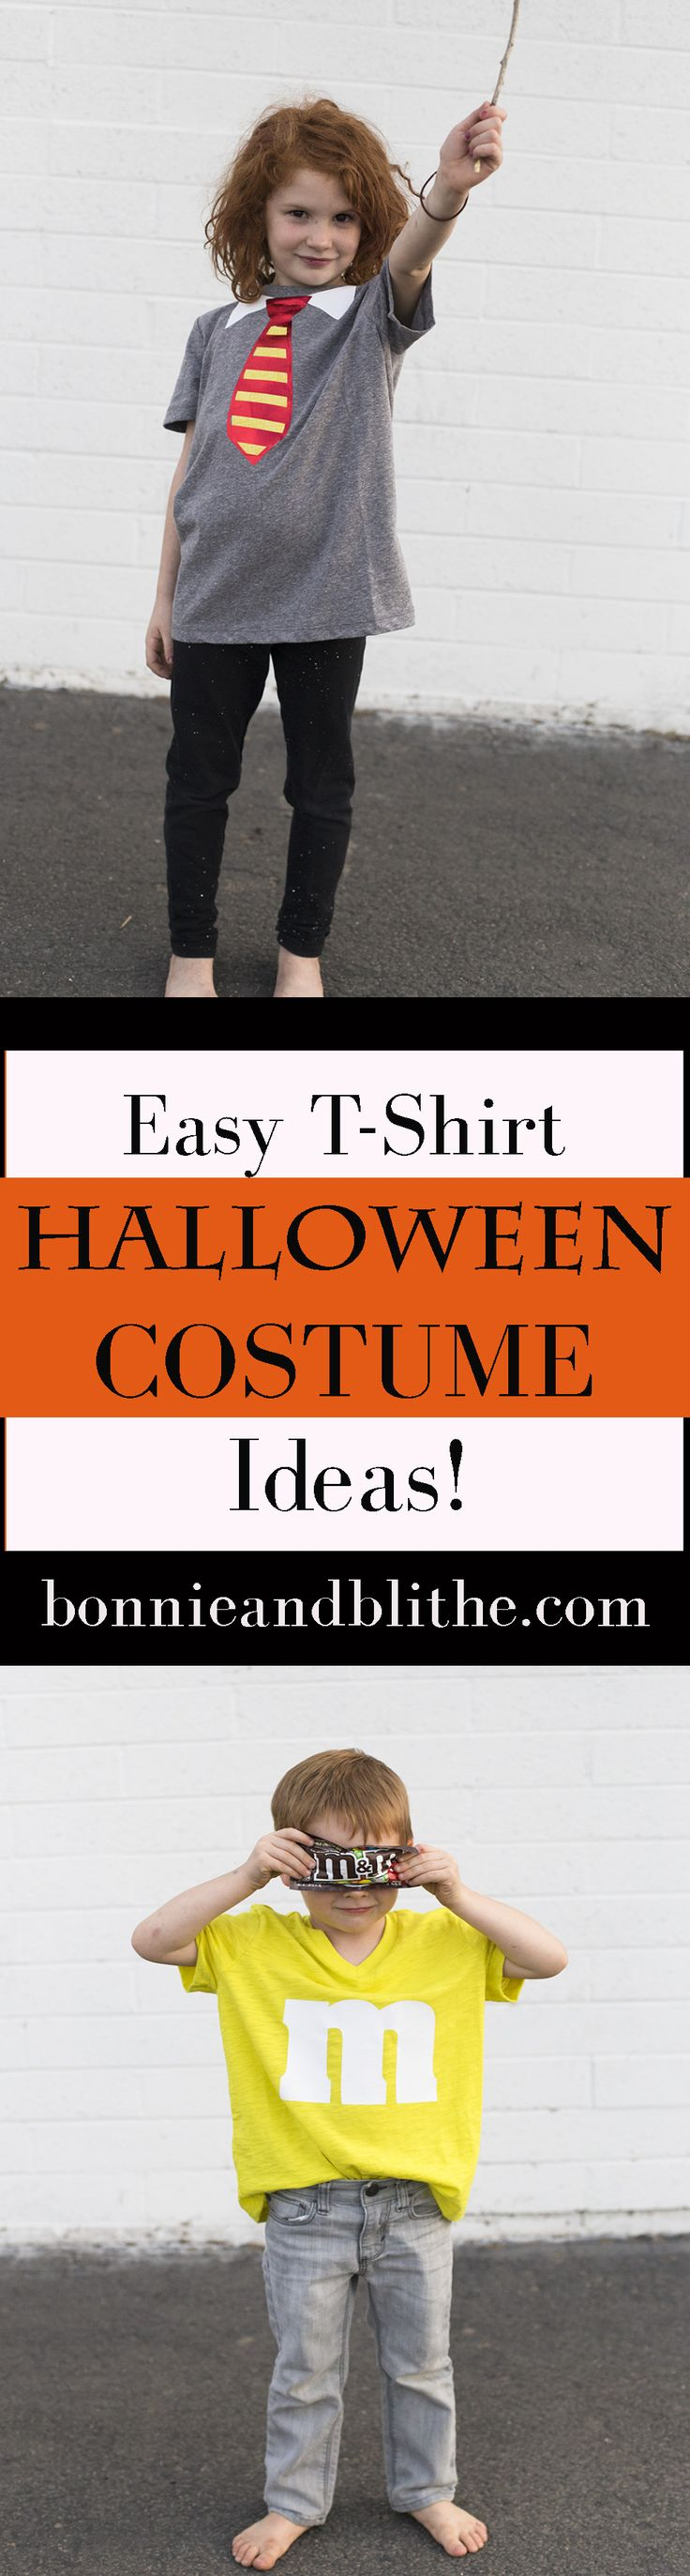 Need a last minute Halloween costume or festive tee?  Use these ideas and your cricut machine to make cute Halloween outfits in just 30 minutes or less!  The perfect no-sew costume alternative.